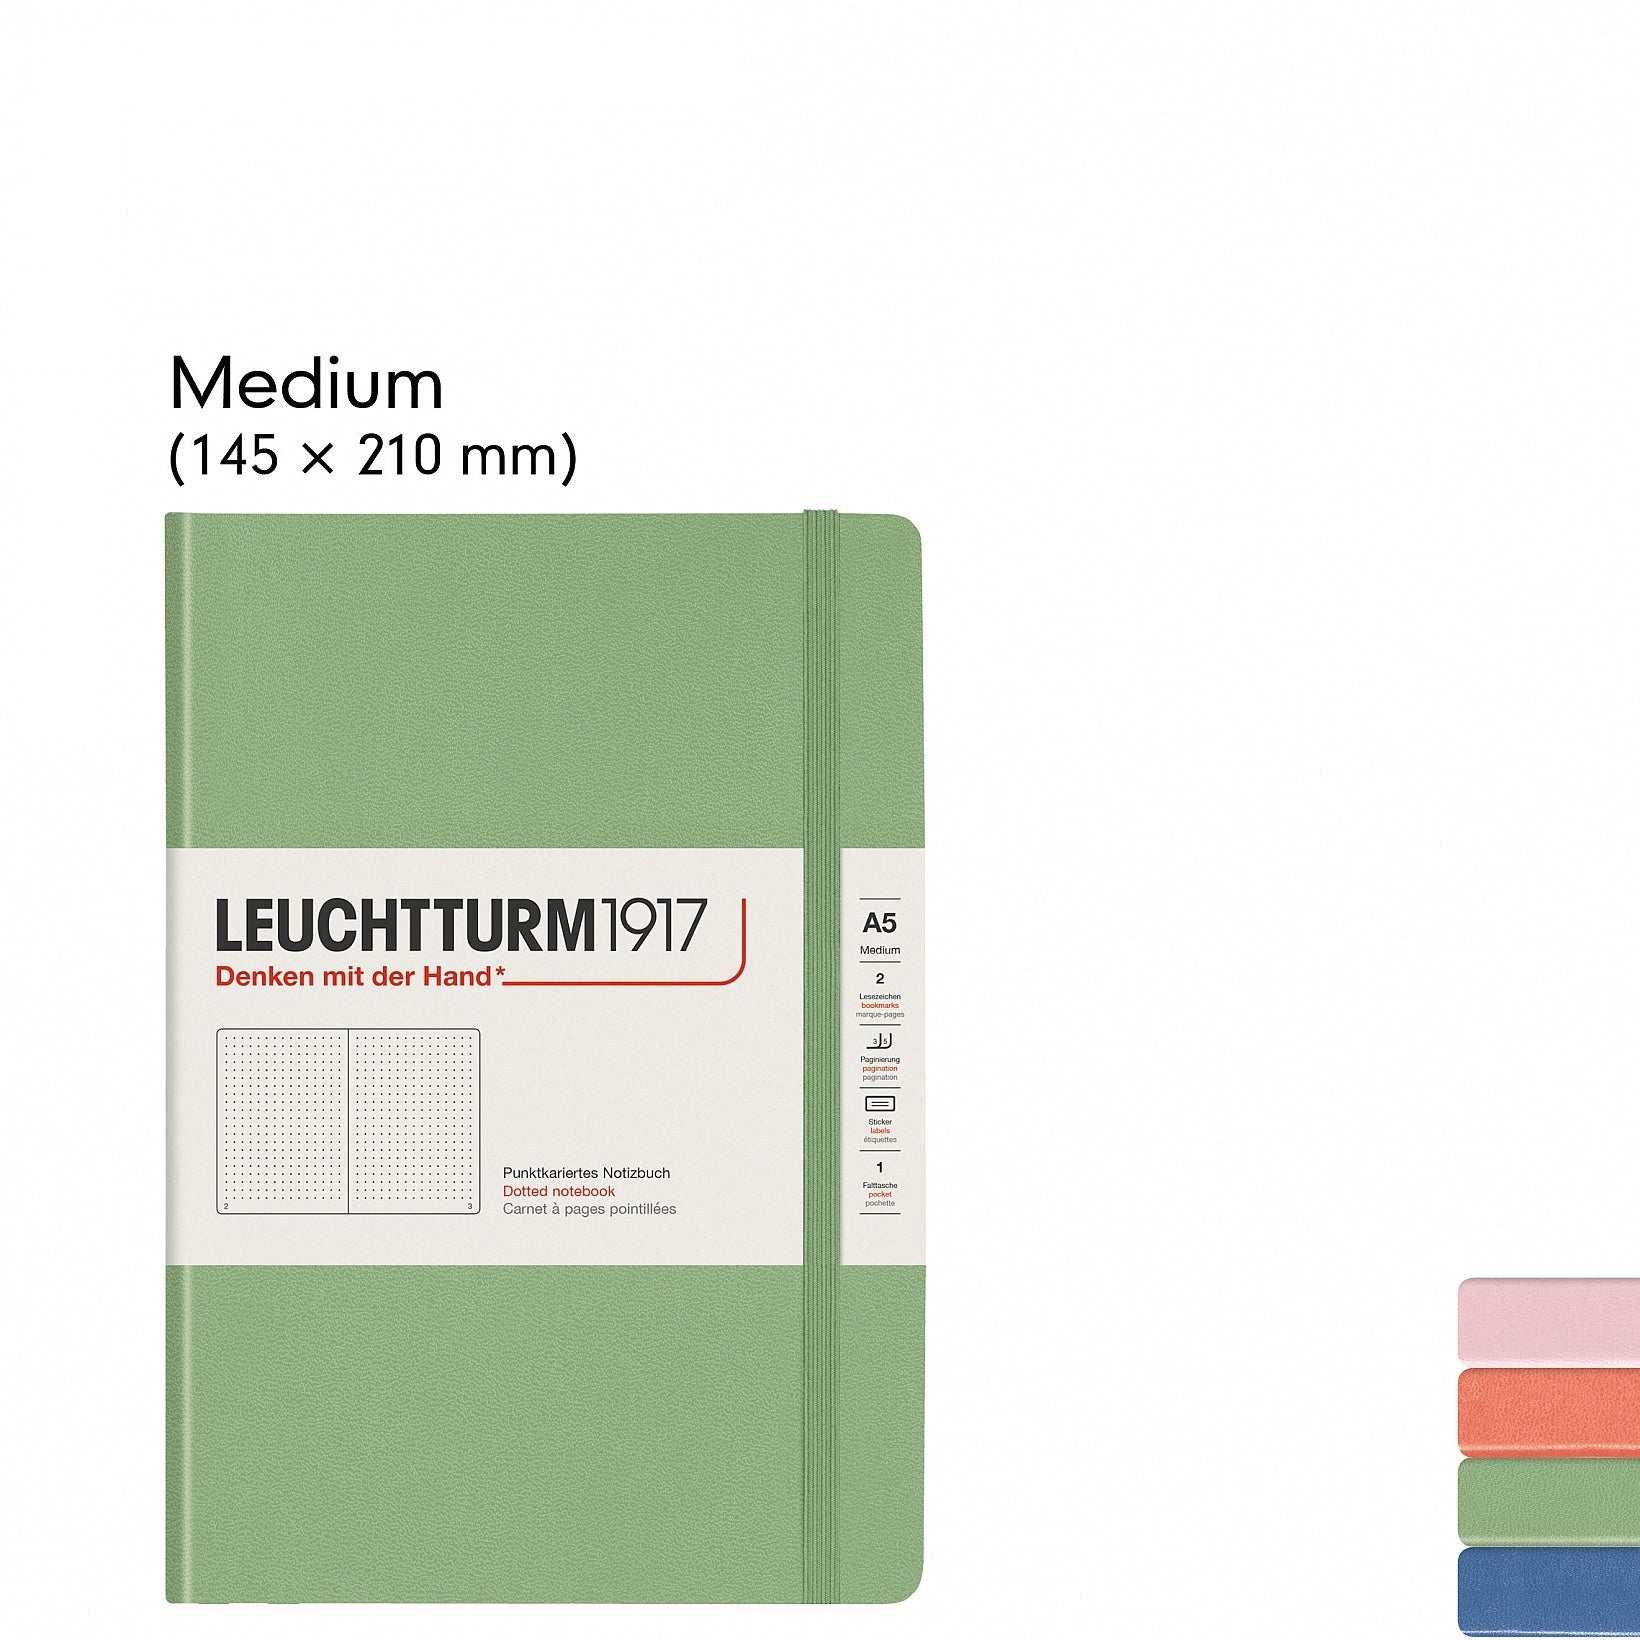 Leuchtturm1917 Special Edition Muted Colors Softcover A5 Medium Dotted Notebook Bellini